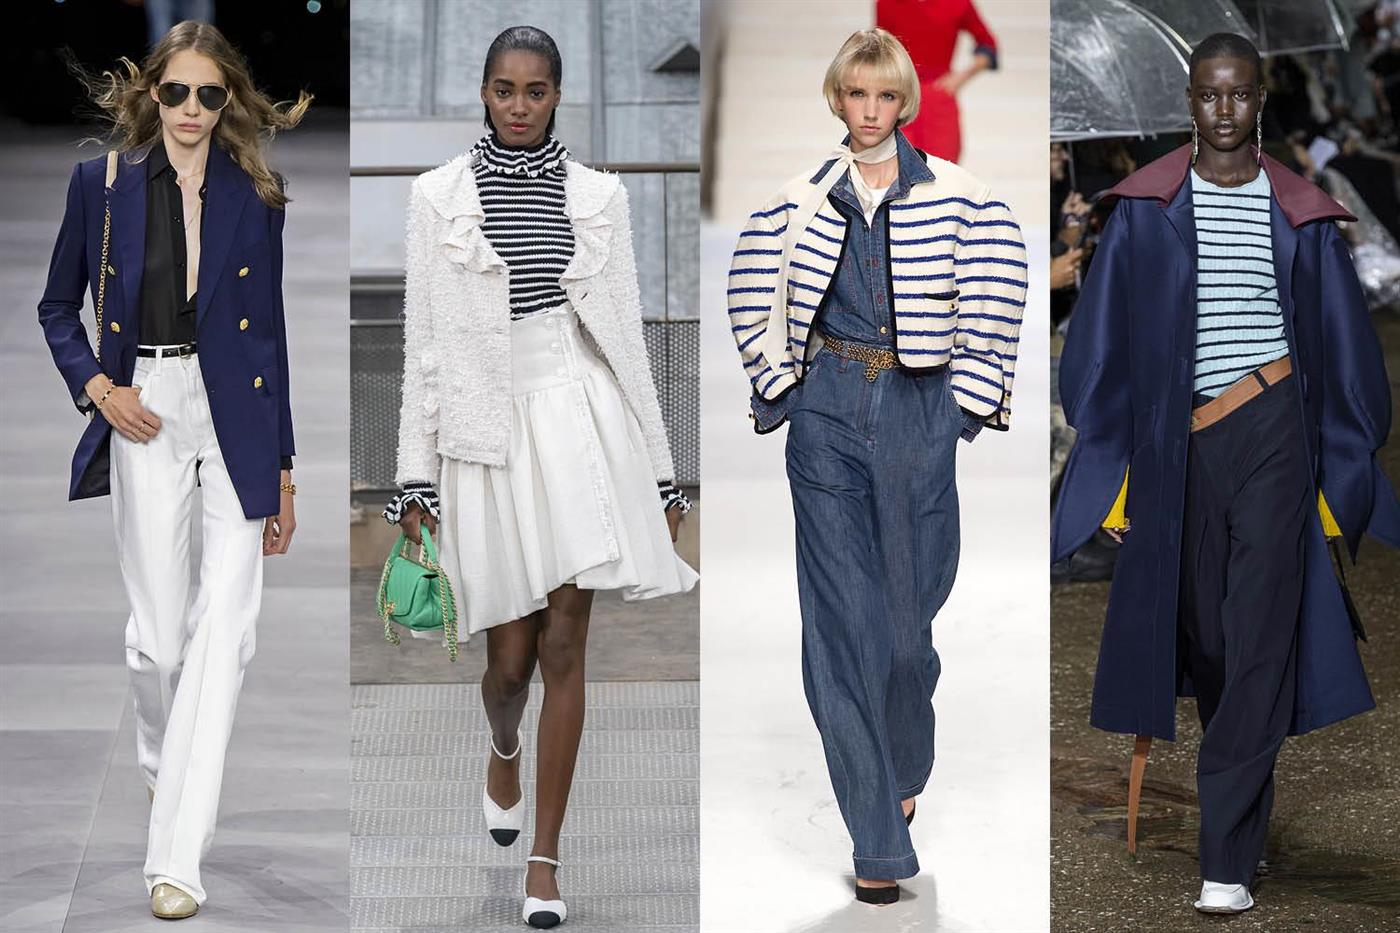 Tendencia marinero chic